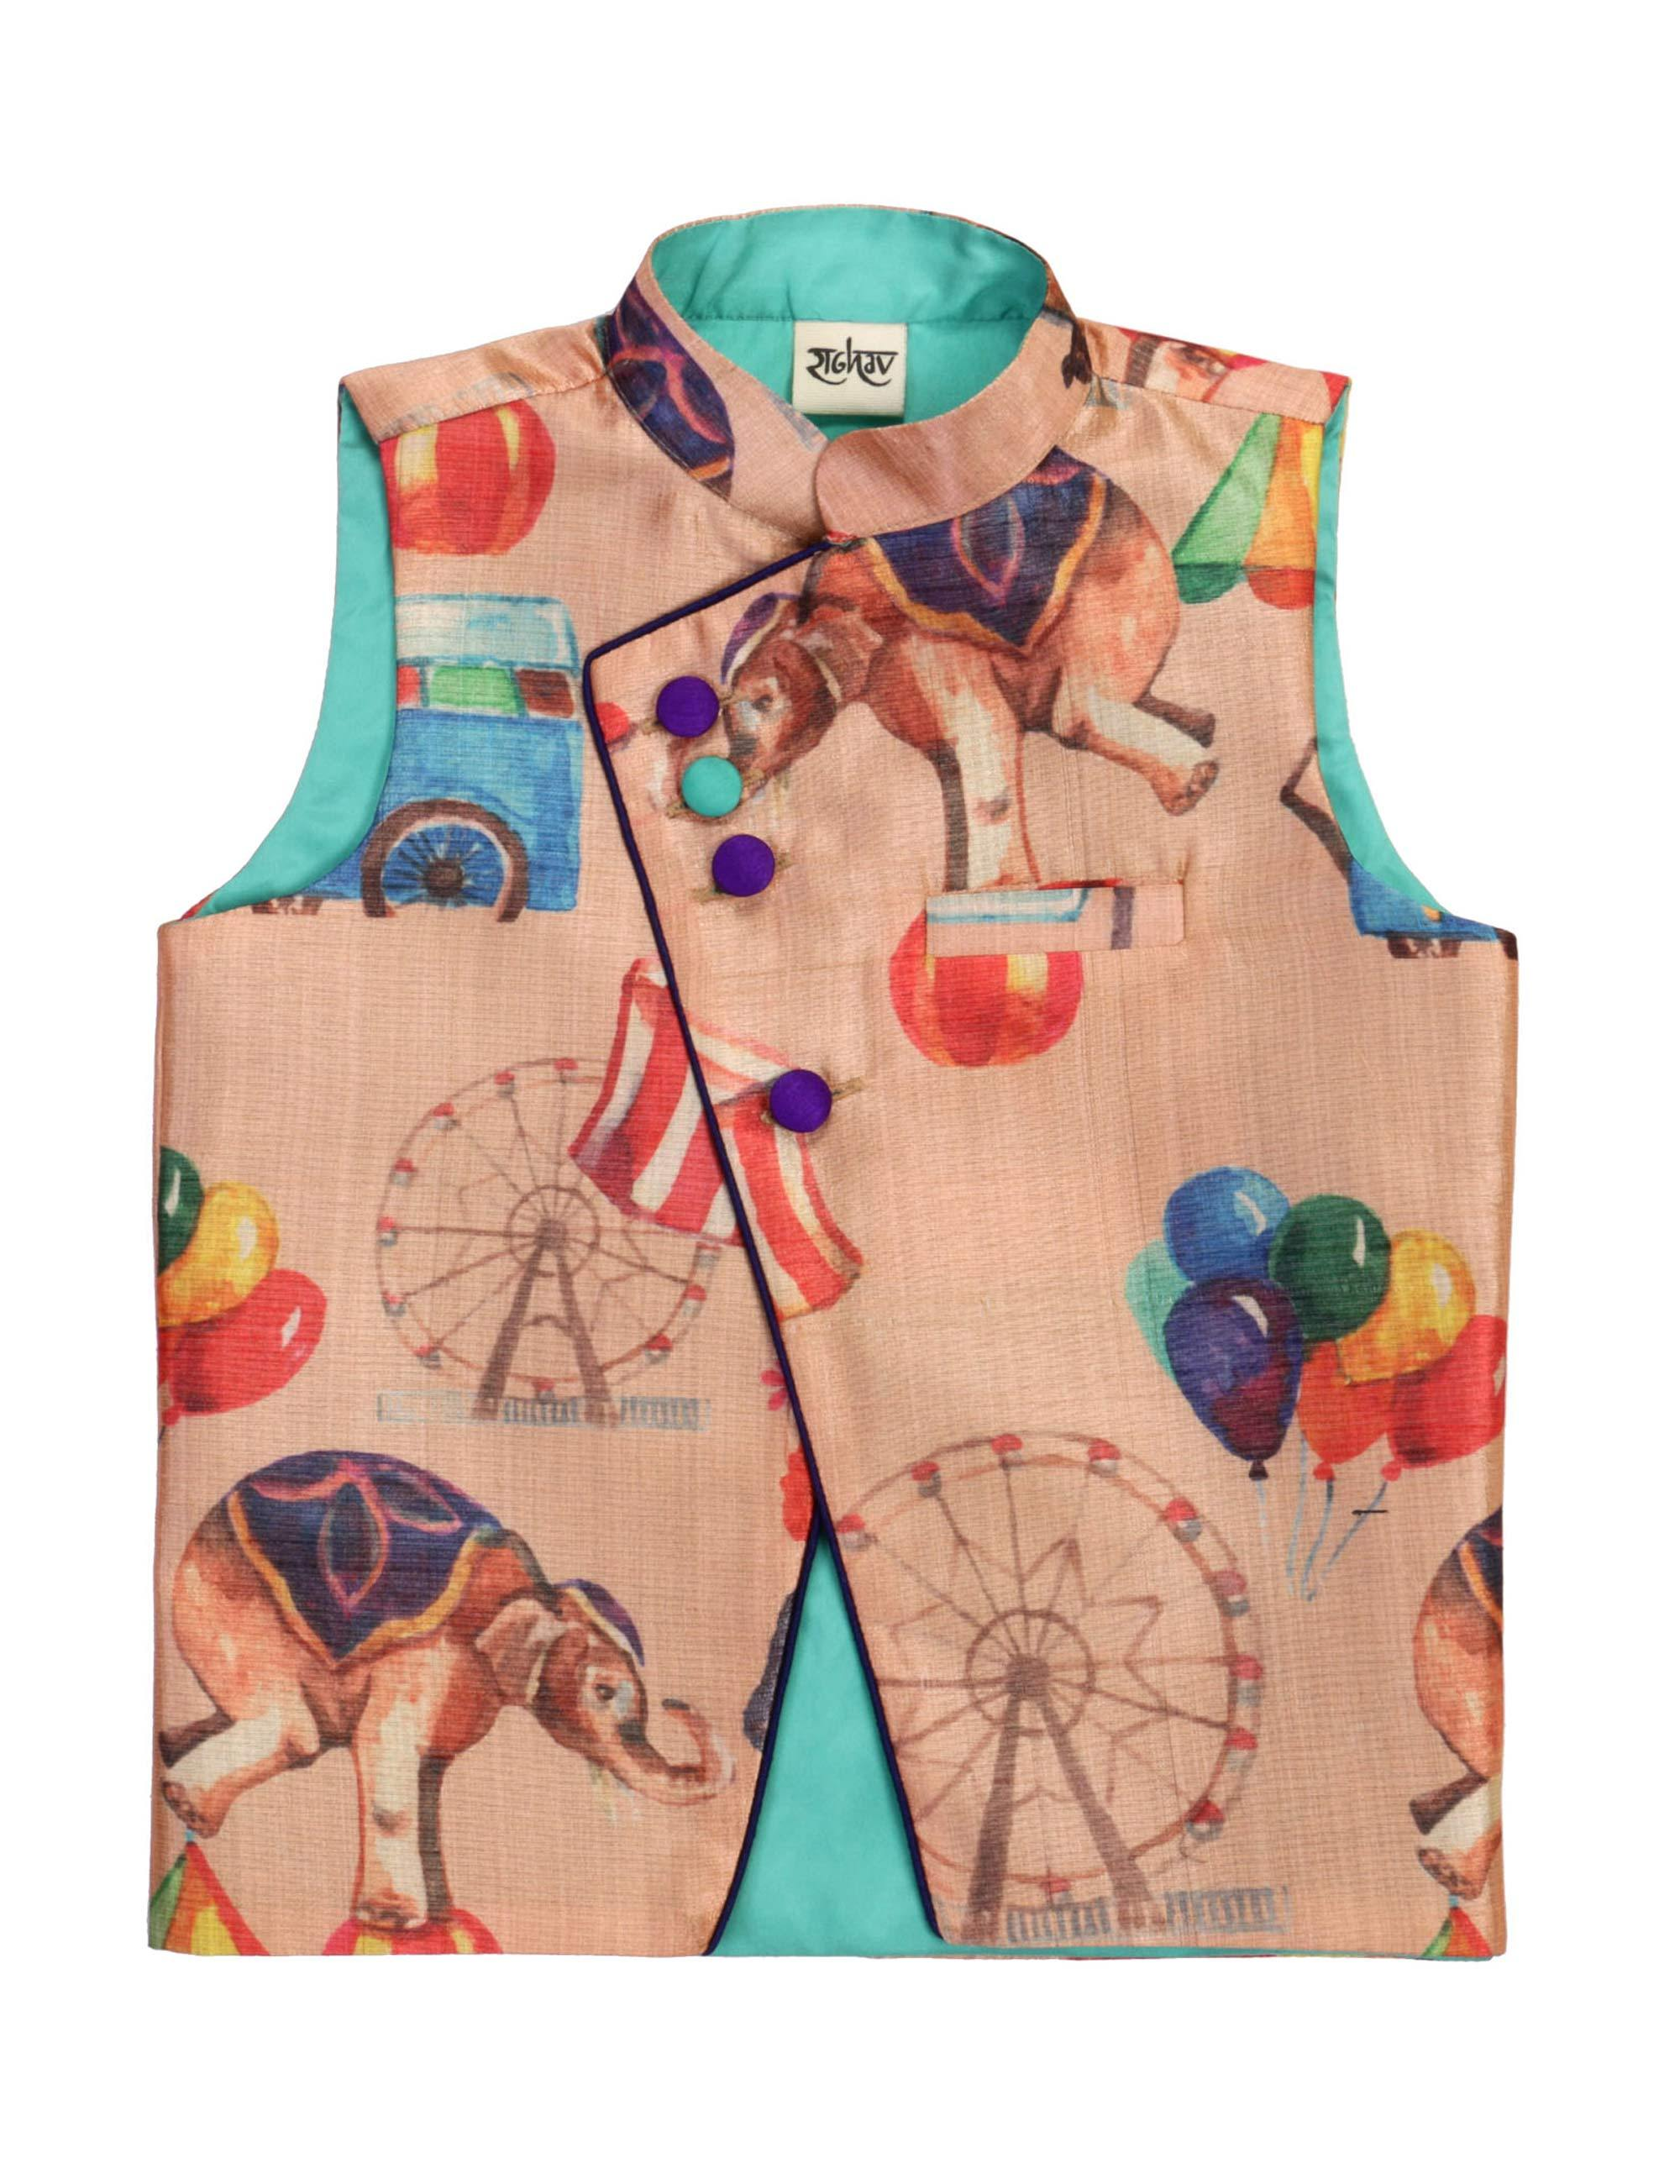 Circus Printed Jacket for Boys